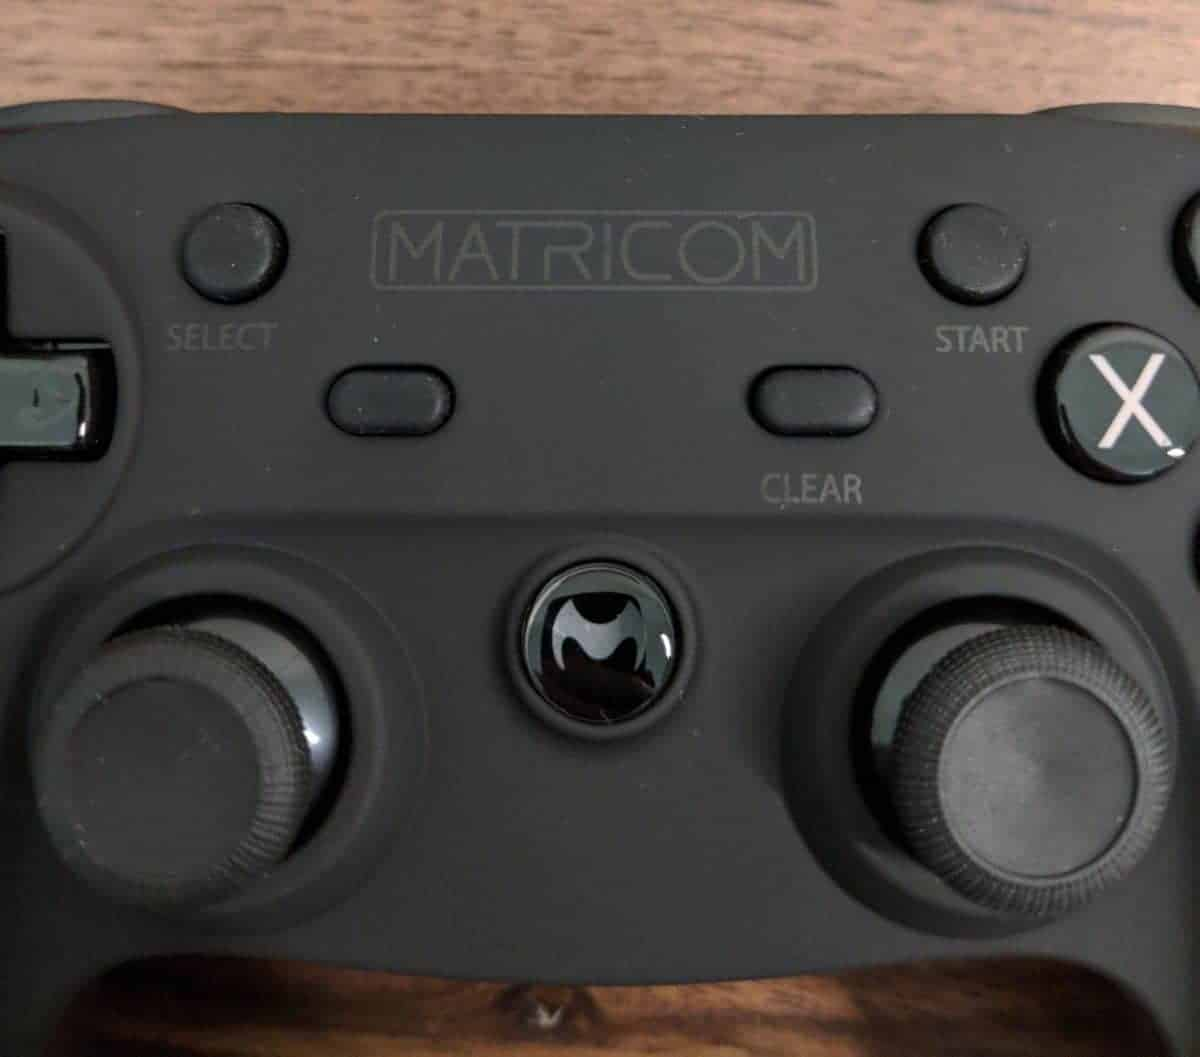 matricom-gbox-photos-11 Matricom G-Box Q3 Review